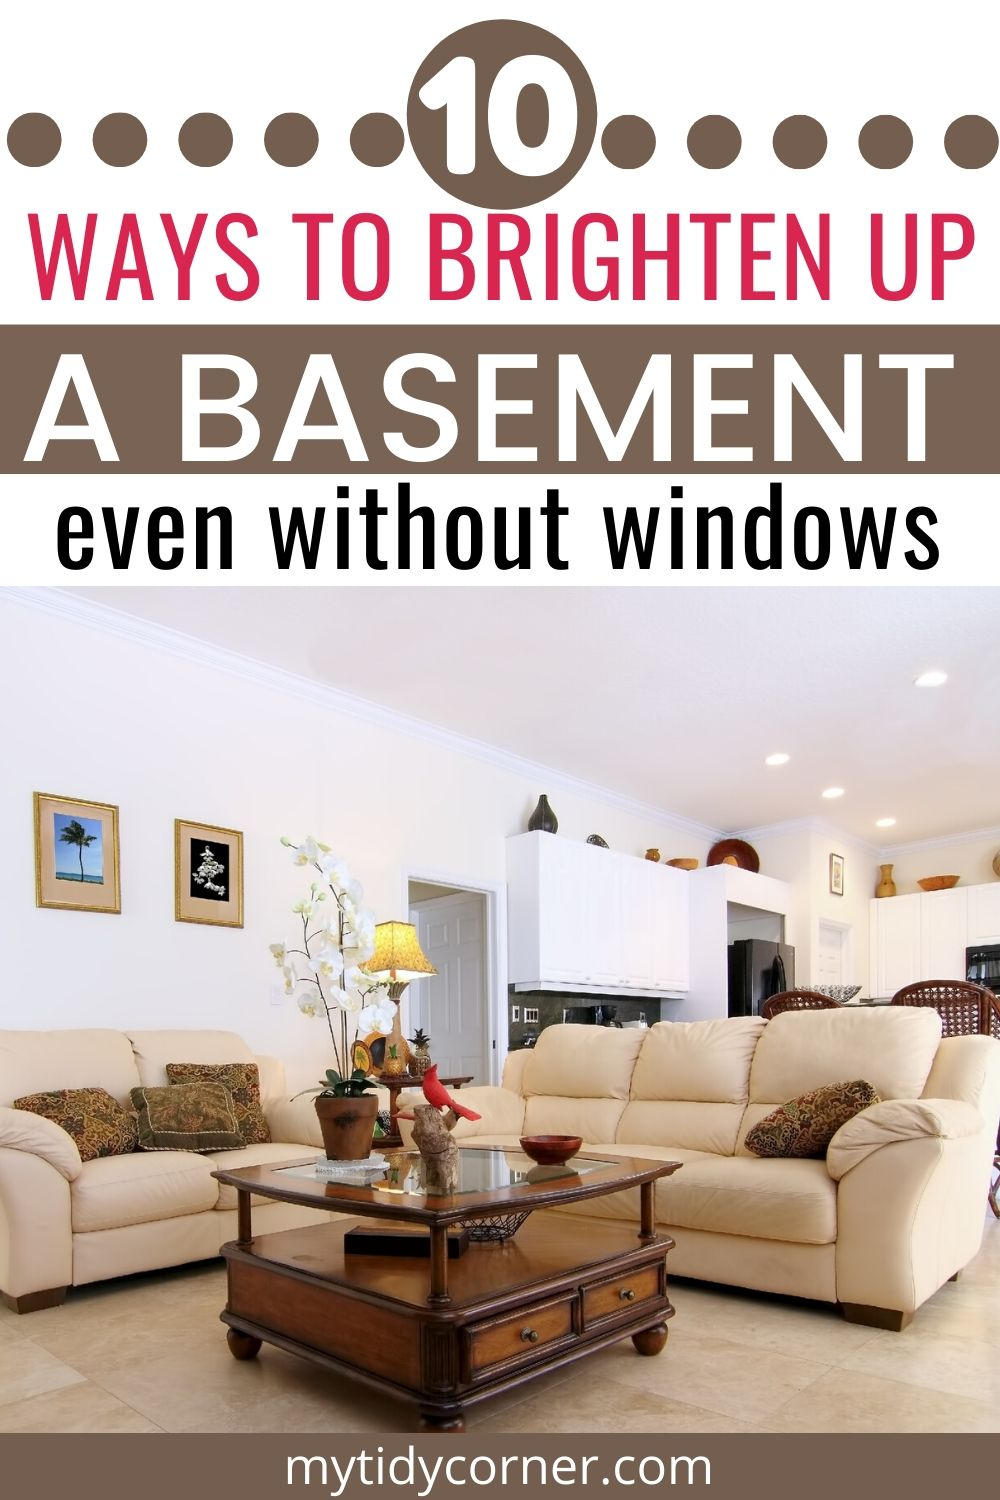 Ways to brighten up a basement